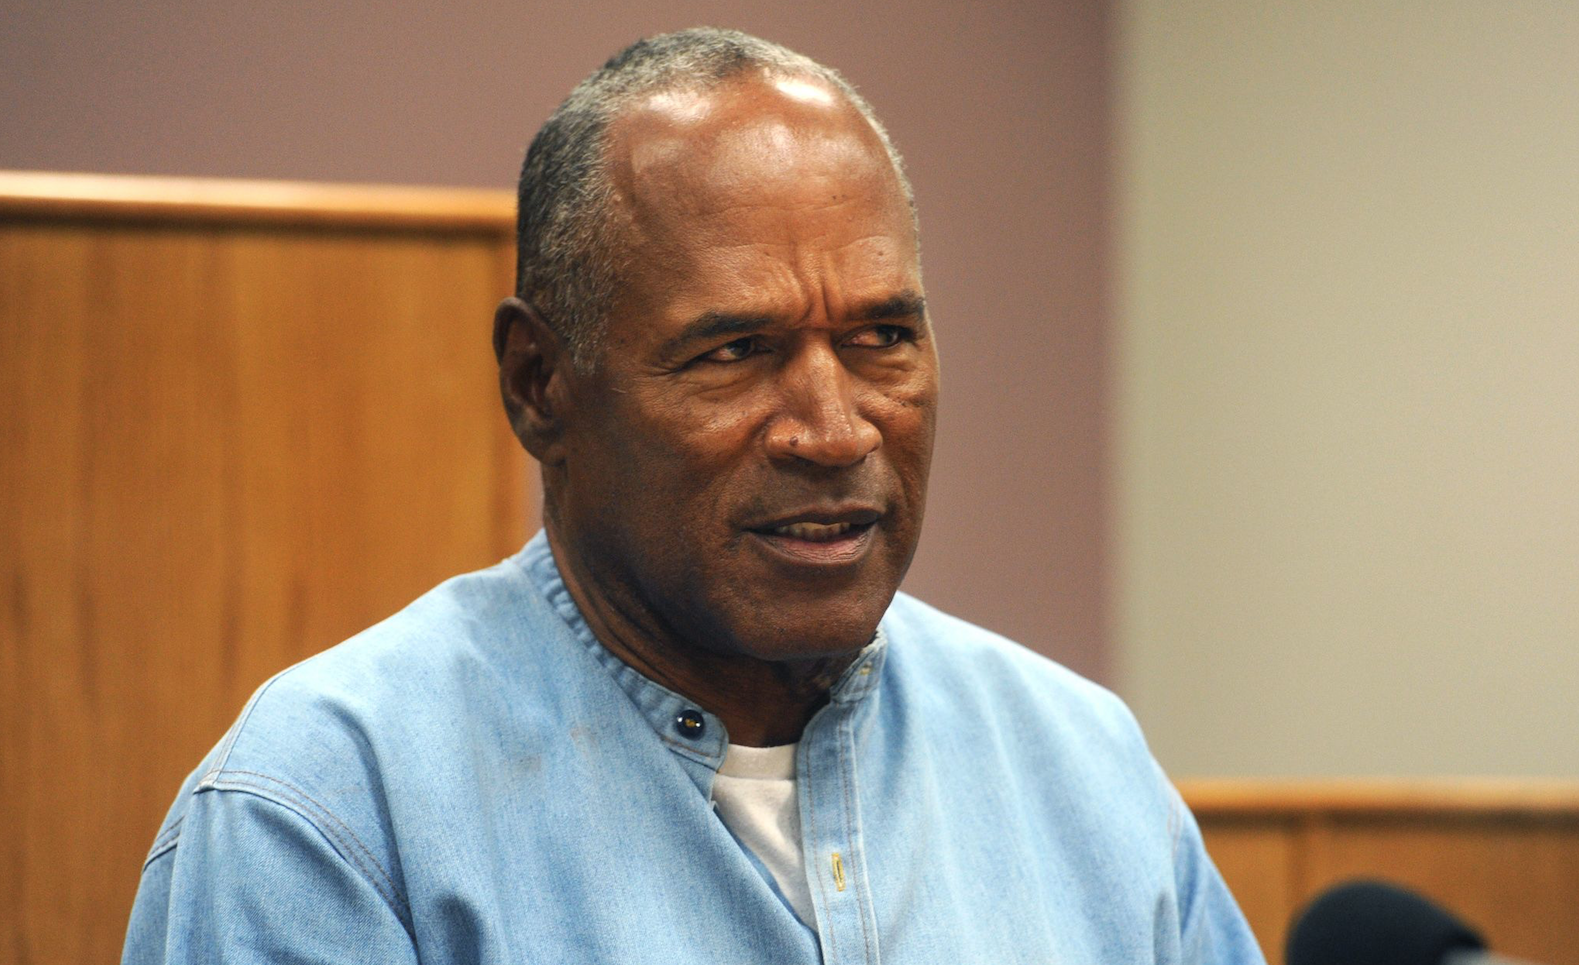 O.J. Simpson Book Publisher Says He 'Was Ready to Confess' to Nicole Simpson Murder, According to His Lawyer